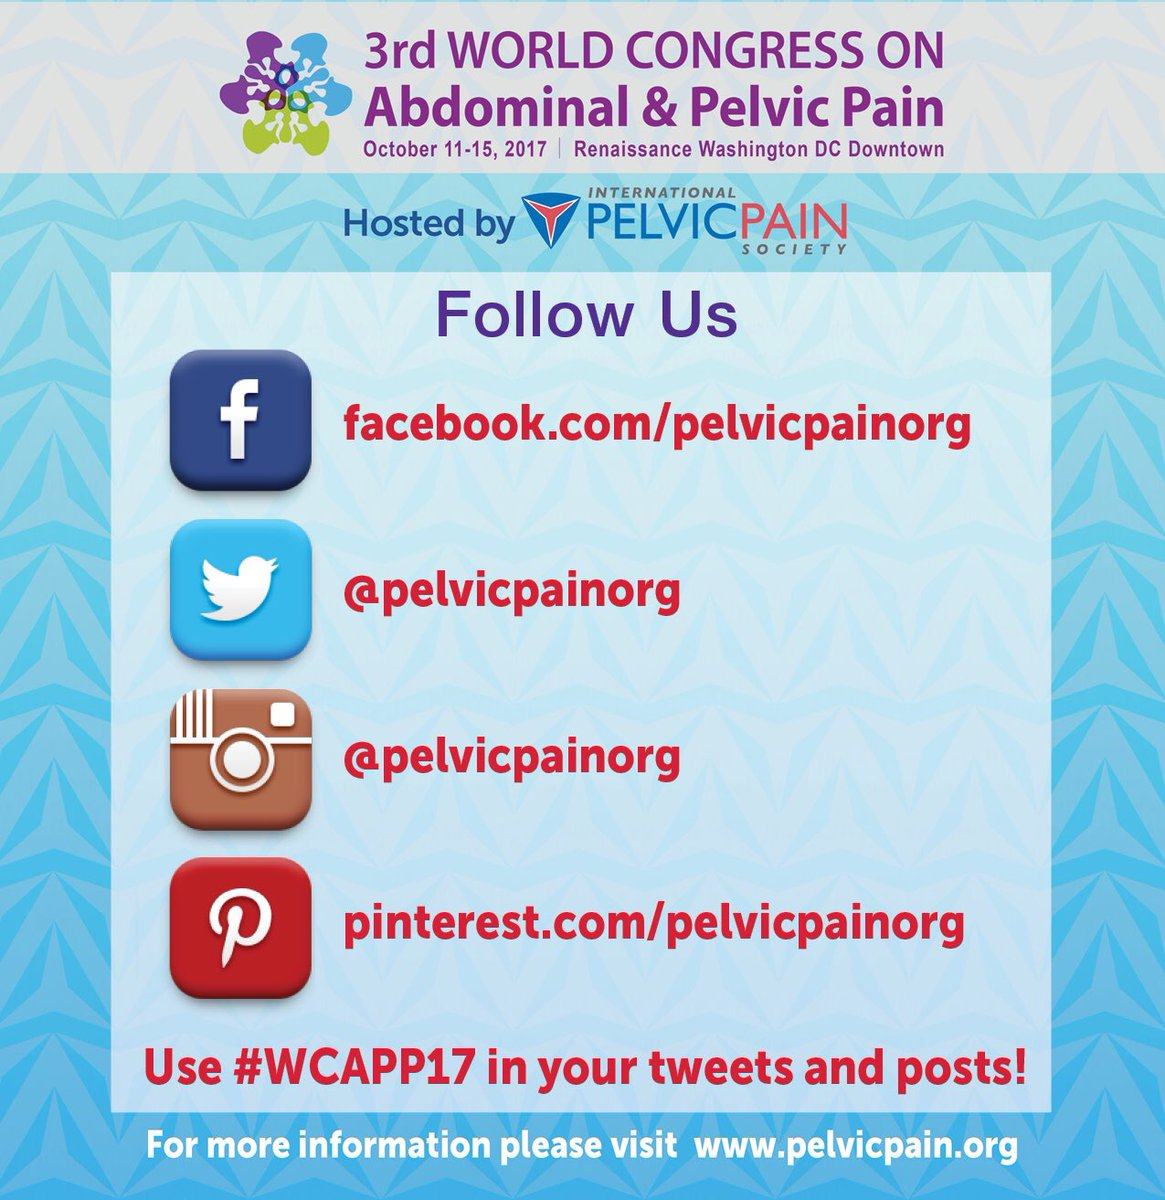 Pls RT! Follow all our social media accts to be up-to-date w/ #WCAPP17 &amp; use #PelvicPainAware after today to keep the convo going<br>http://pic.twitter.com/FJa1oVngj7